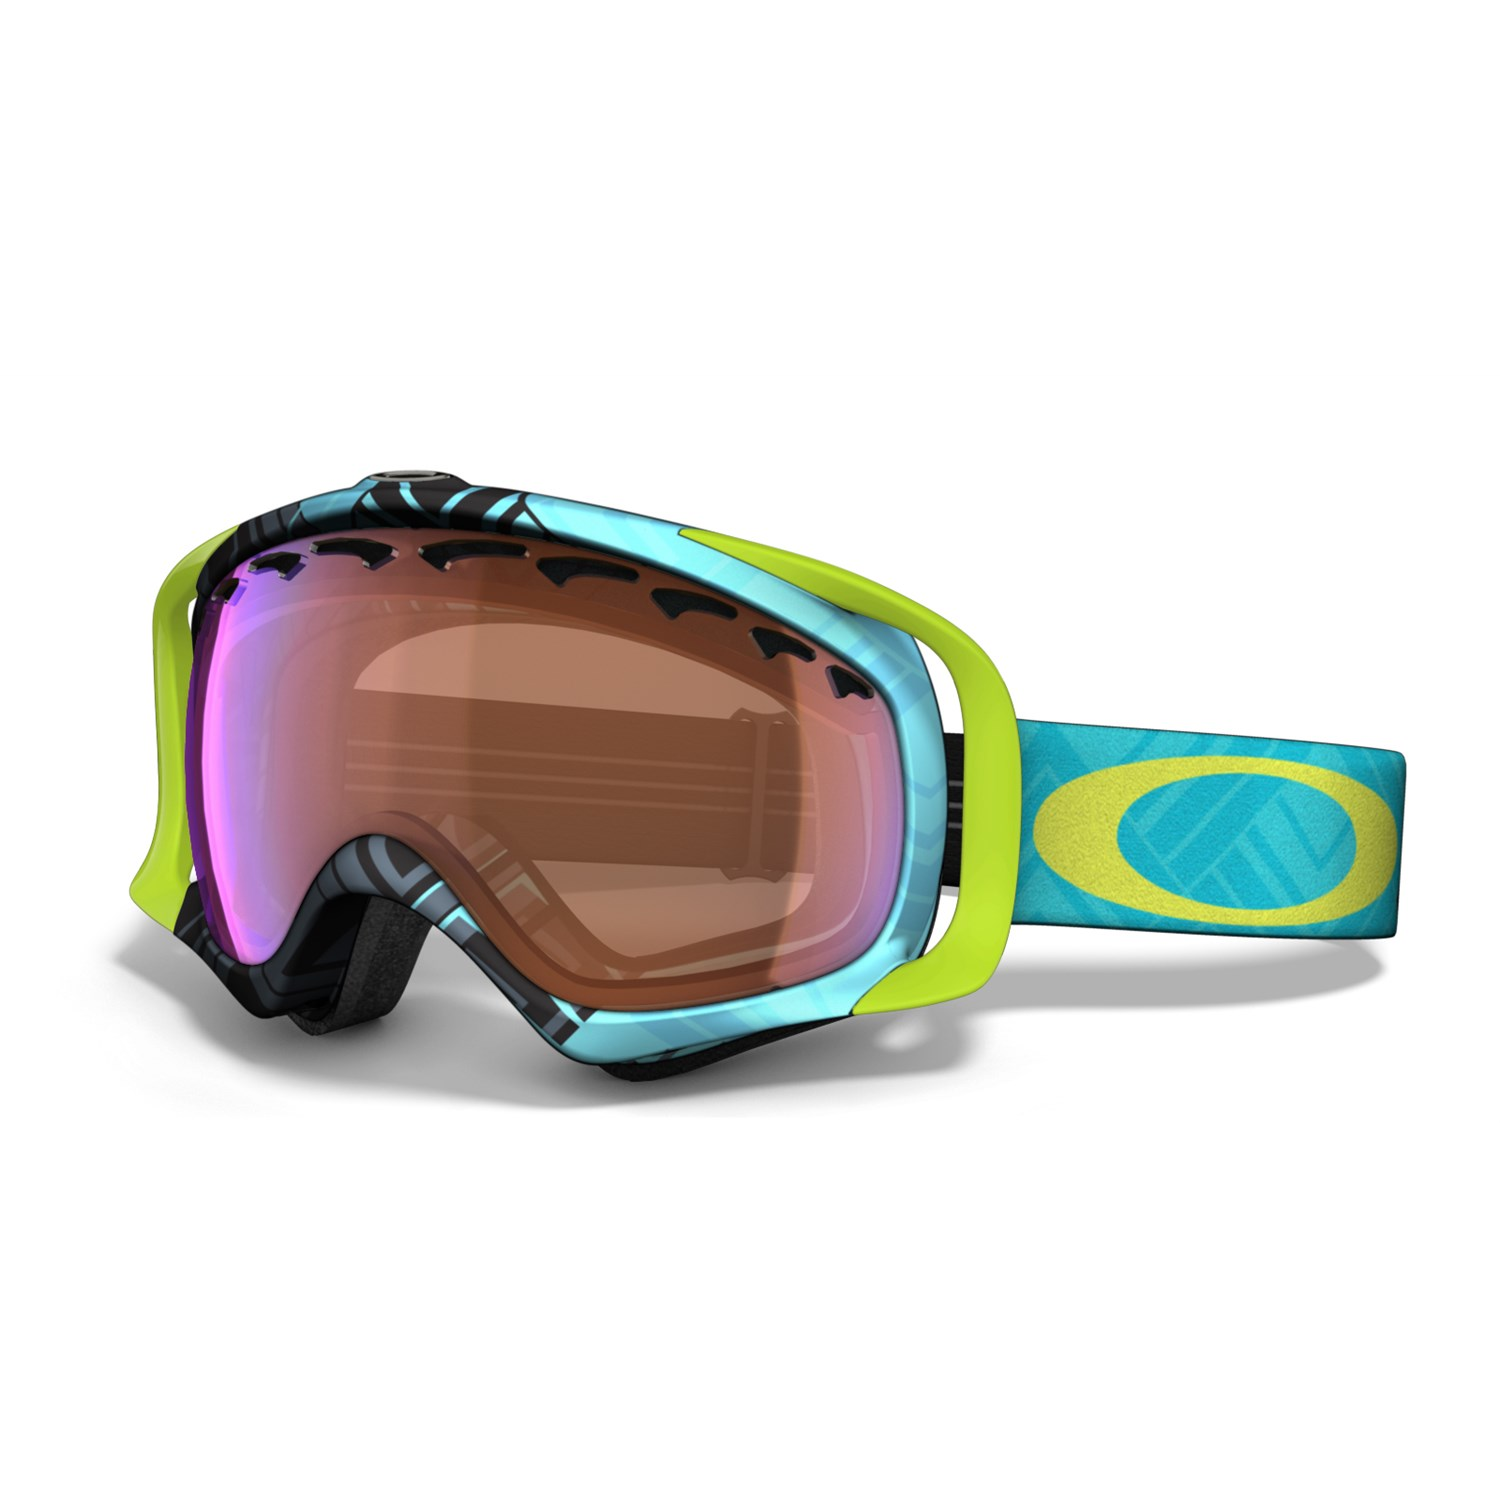 best oakley goggles for snowboarding  Oakley Crowbar Goggles